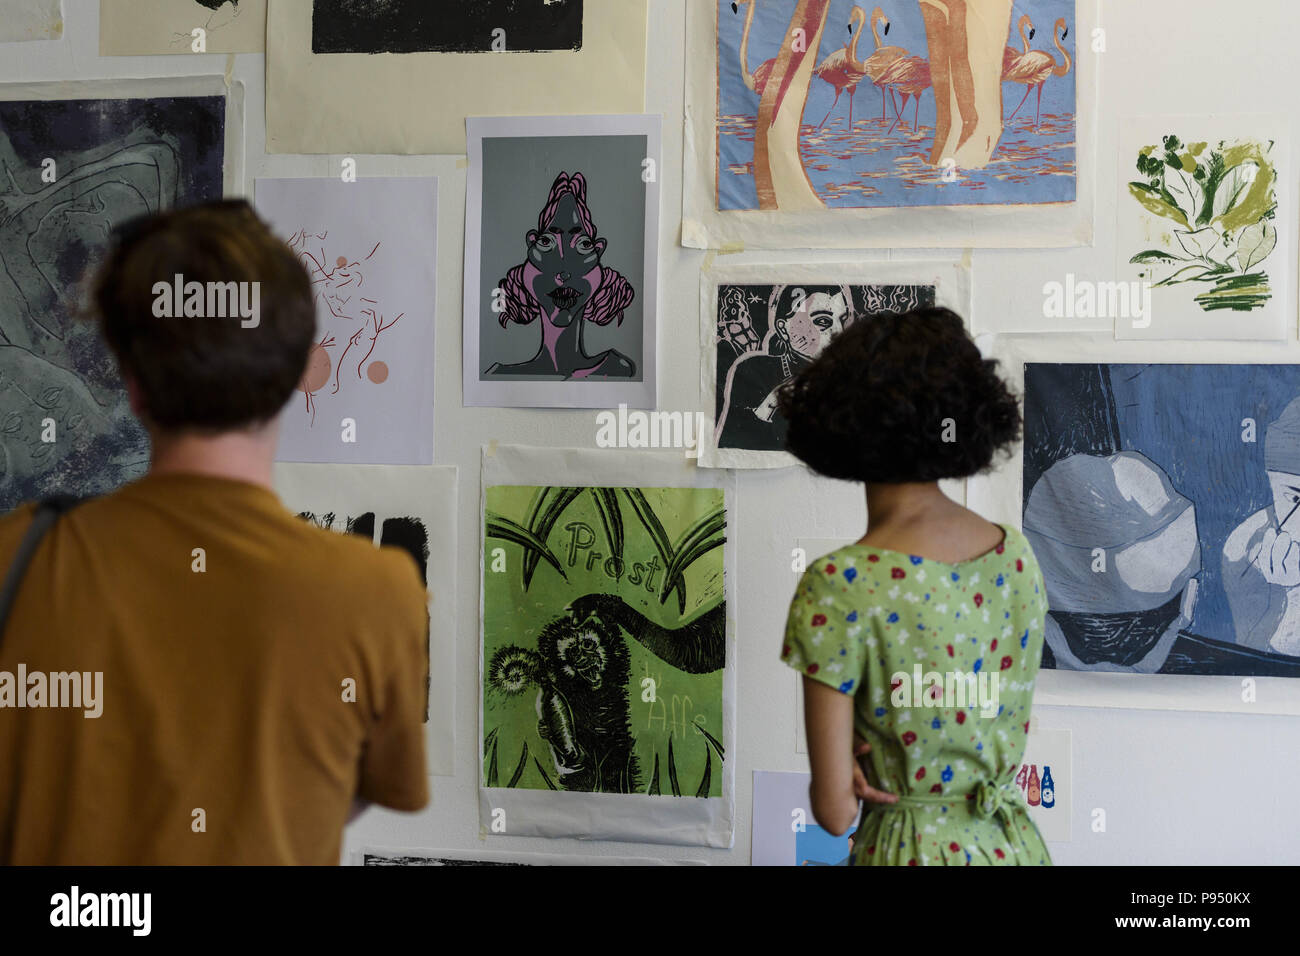 Berlin Germany July 14 2018 Visitors And Students Gather During The Presentation Of Art And Work